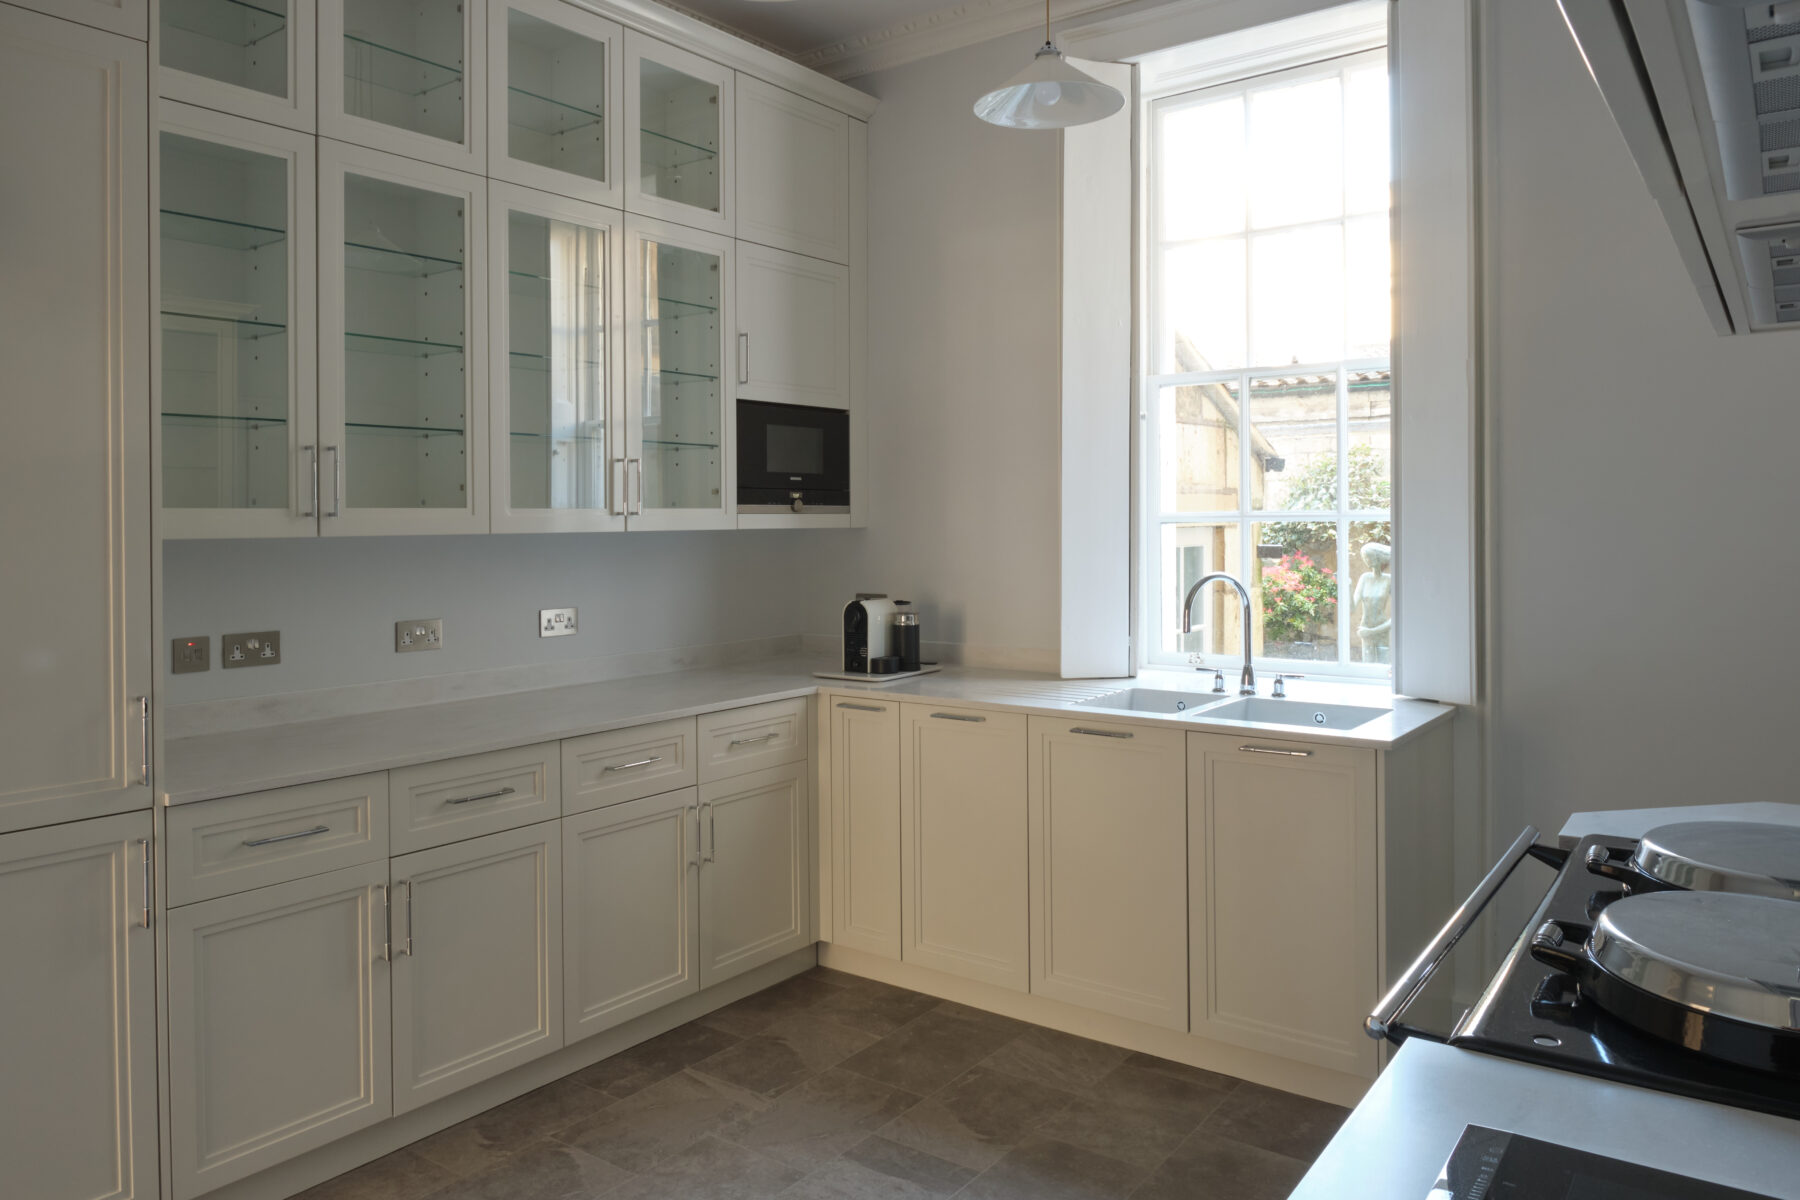 Bespoke kitchen cabinetry with overlay doors